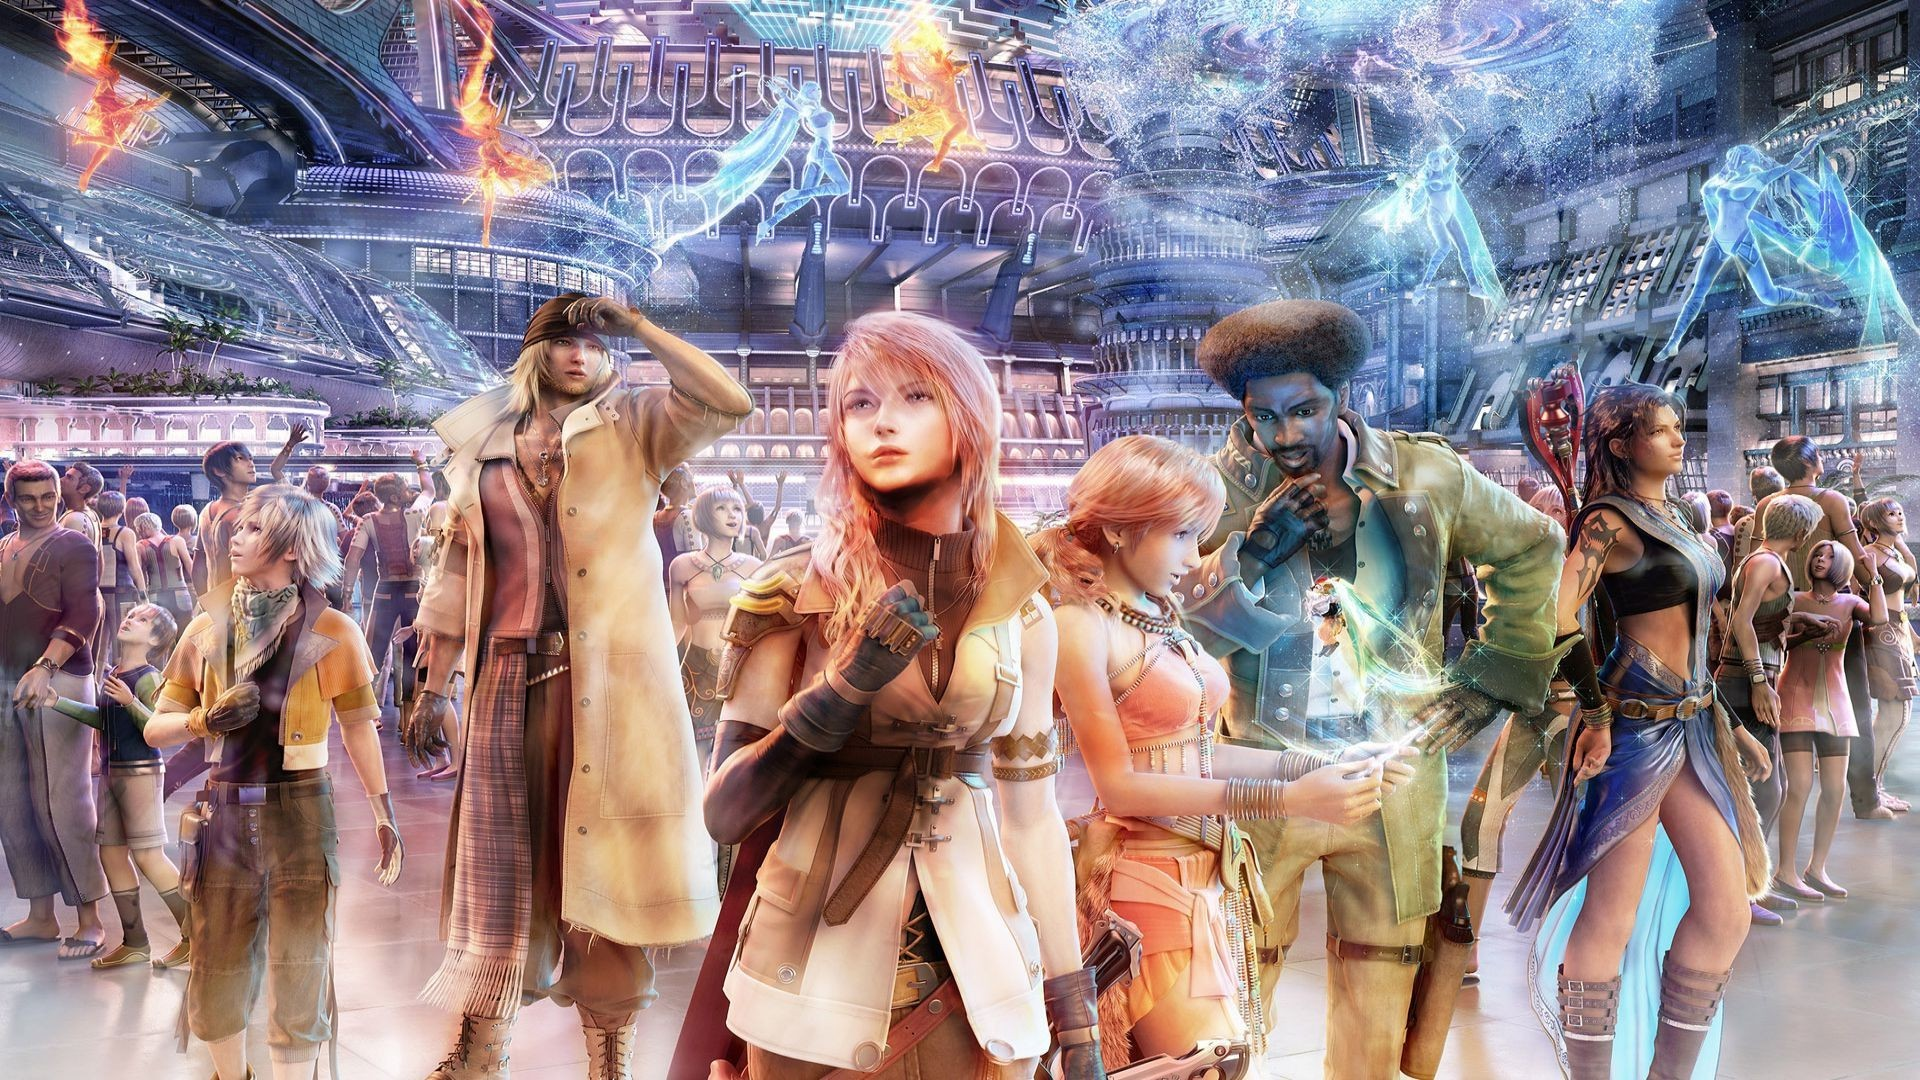 Free Download Final Fantasy Xiii Wallpaper 7897 1920x1080 For